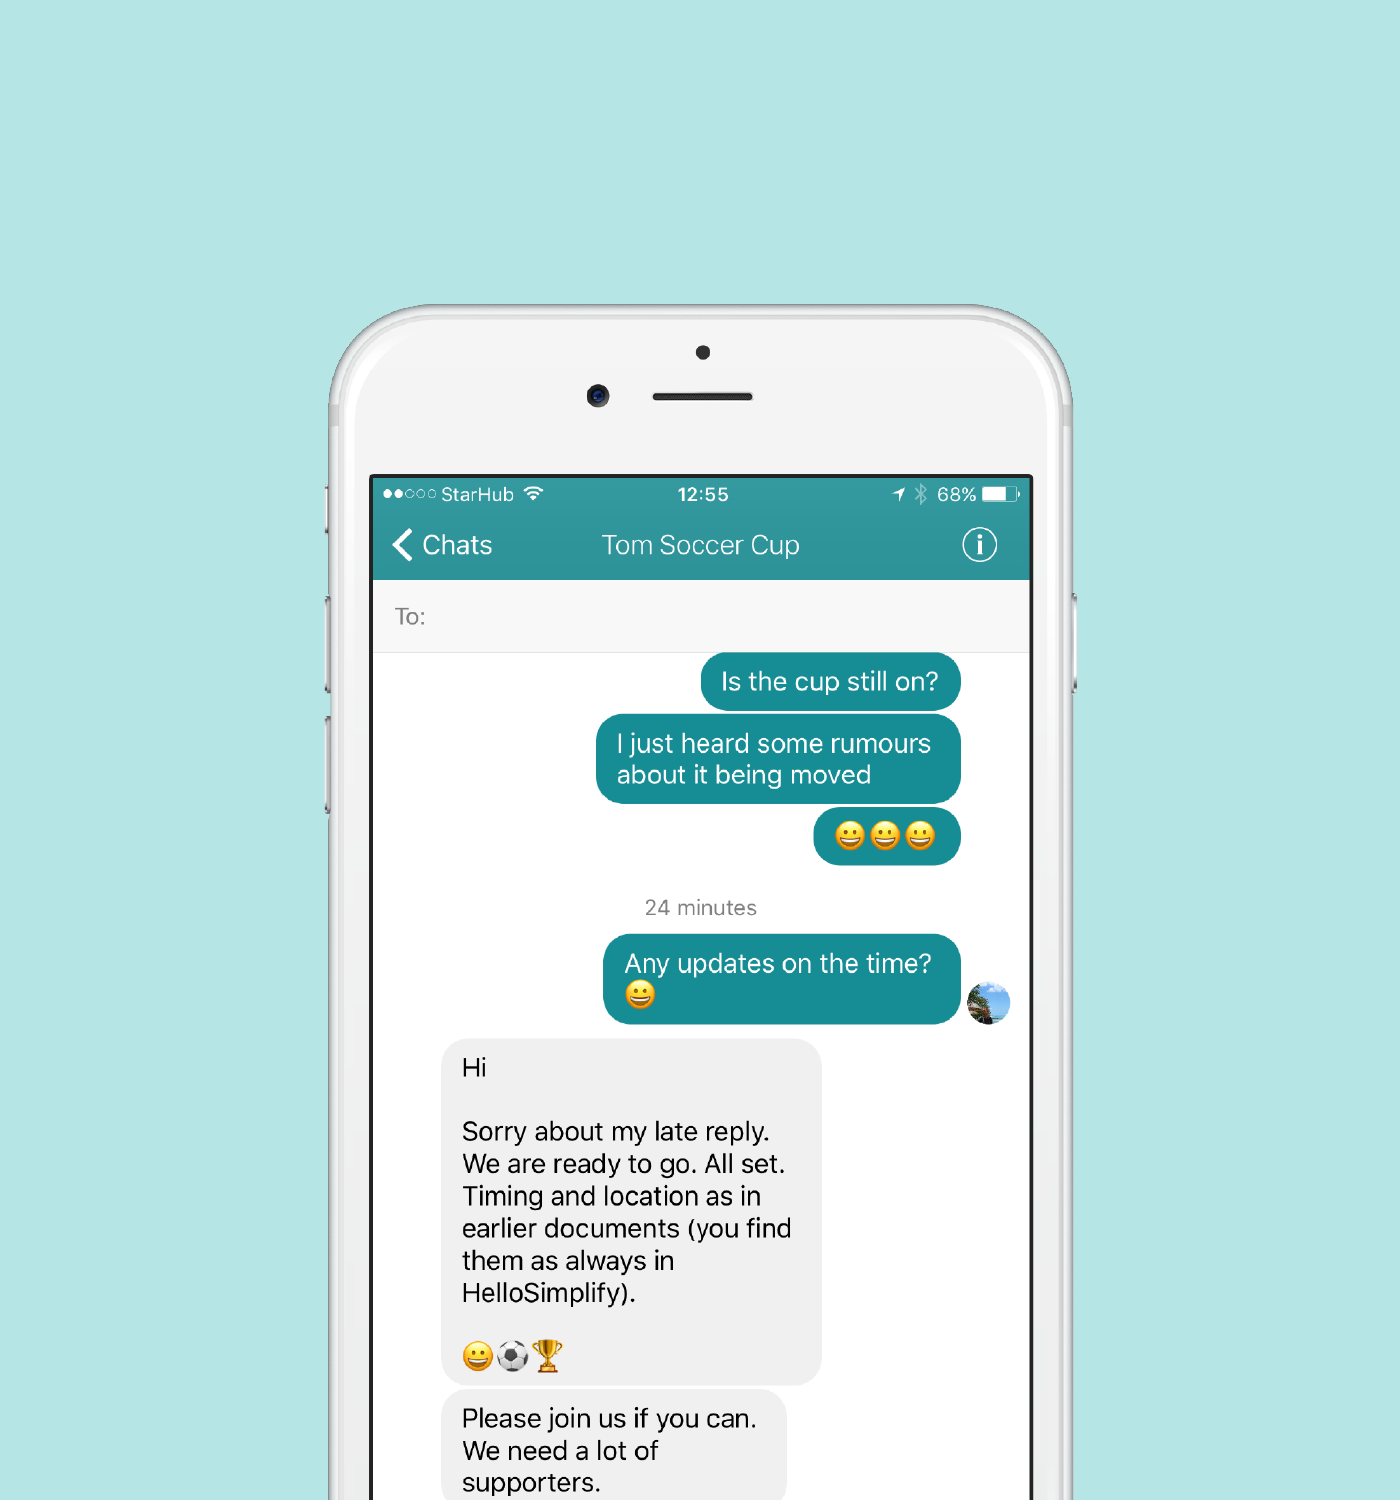 - No more switching between Whatsapp, Messenger, and WeChat to talk to different people. Get help faster. Share happy news. Know what your kids are doing (and where they are). It has everything you need - emojis, photos, videos and location sharing.